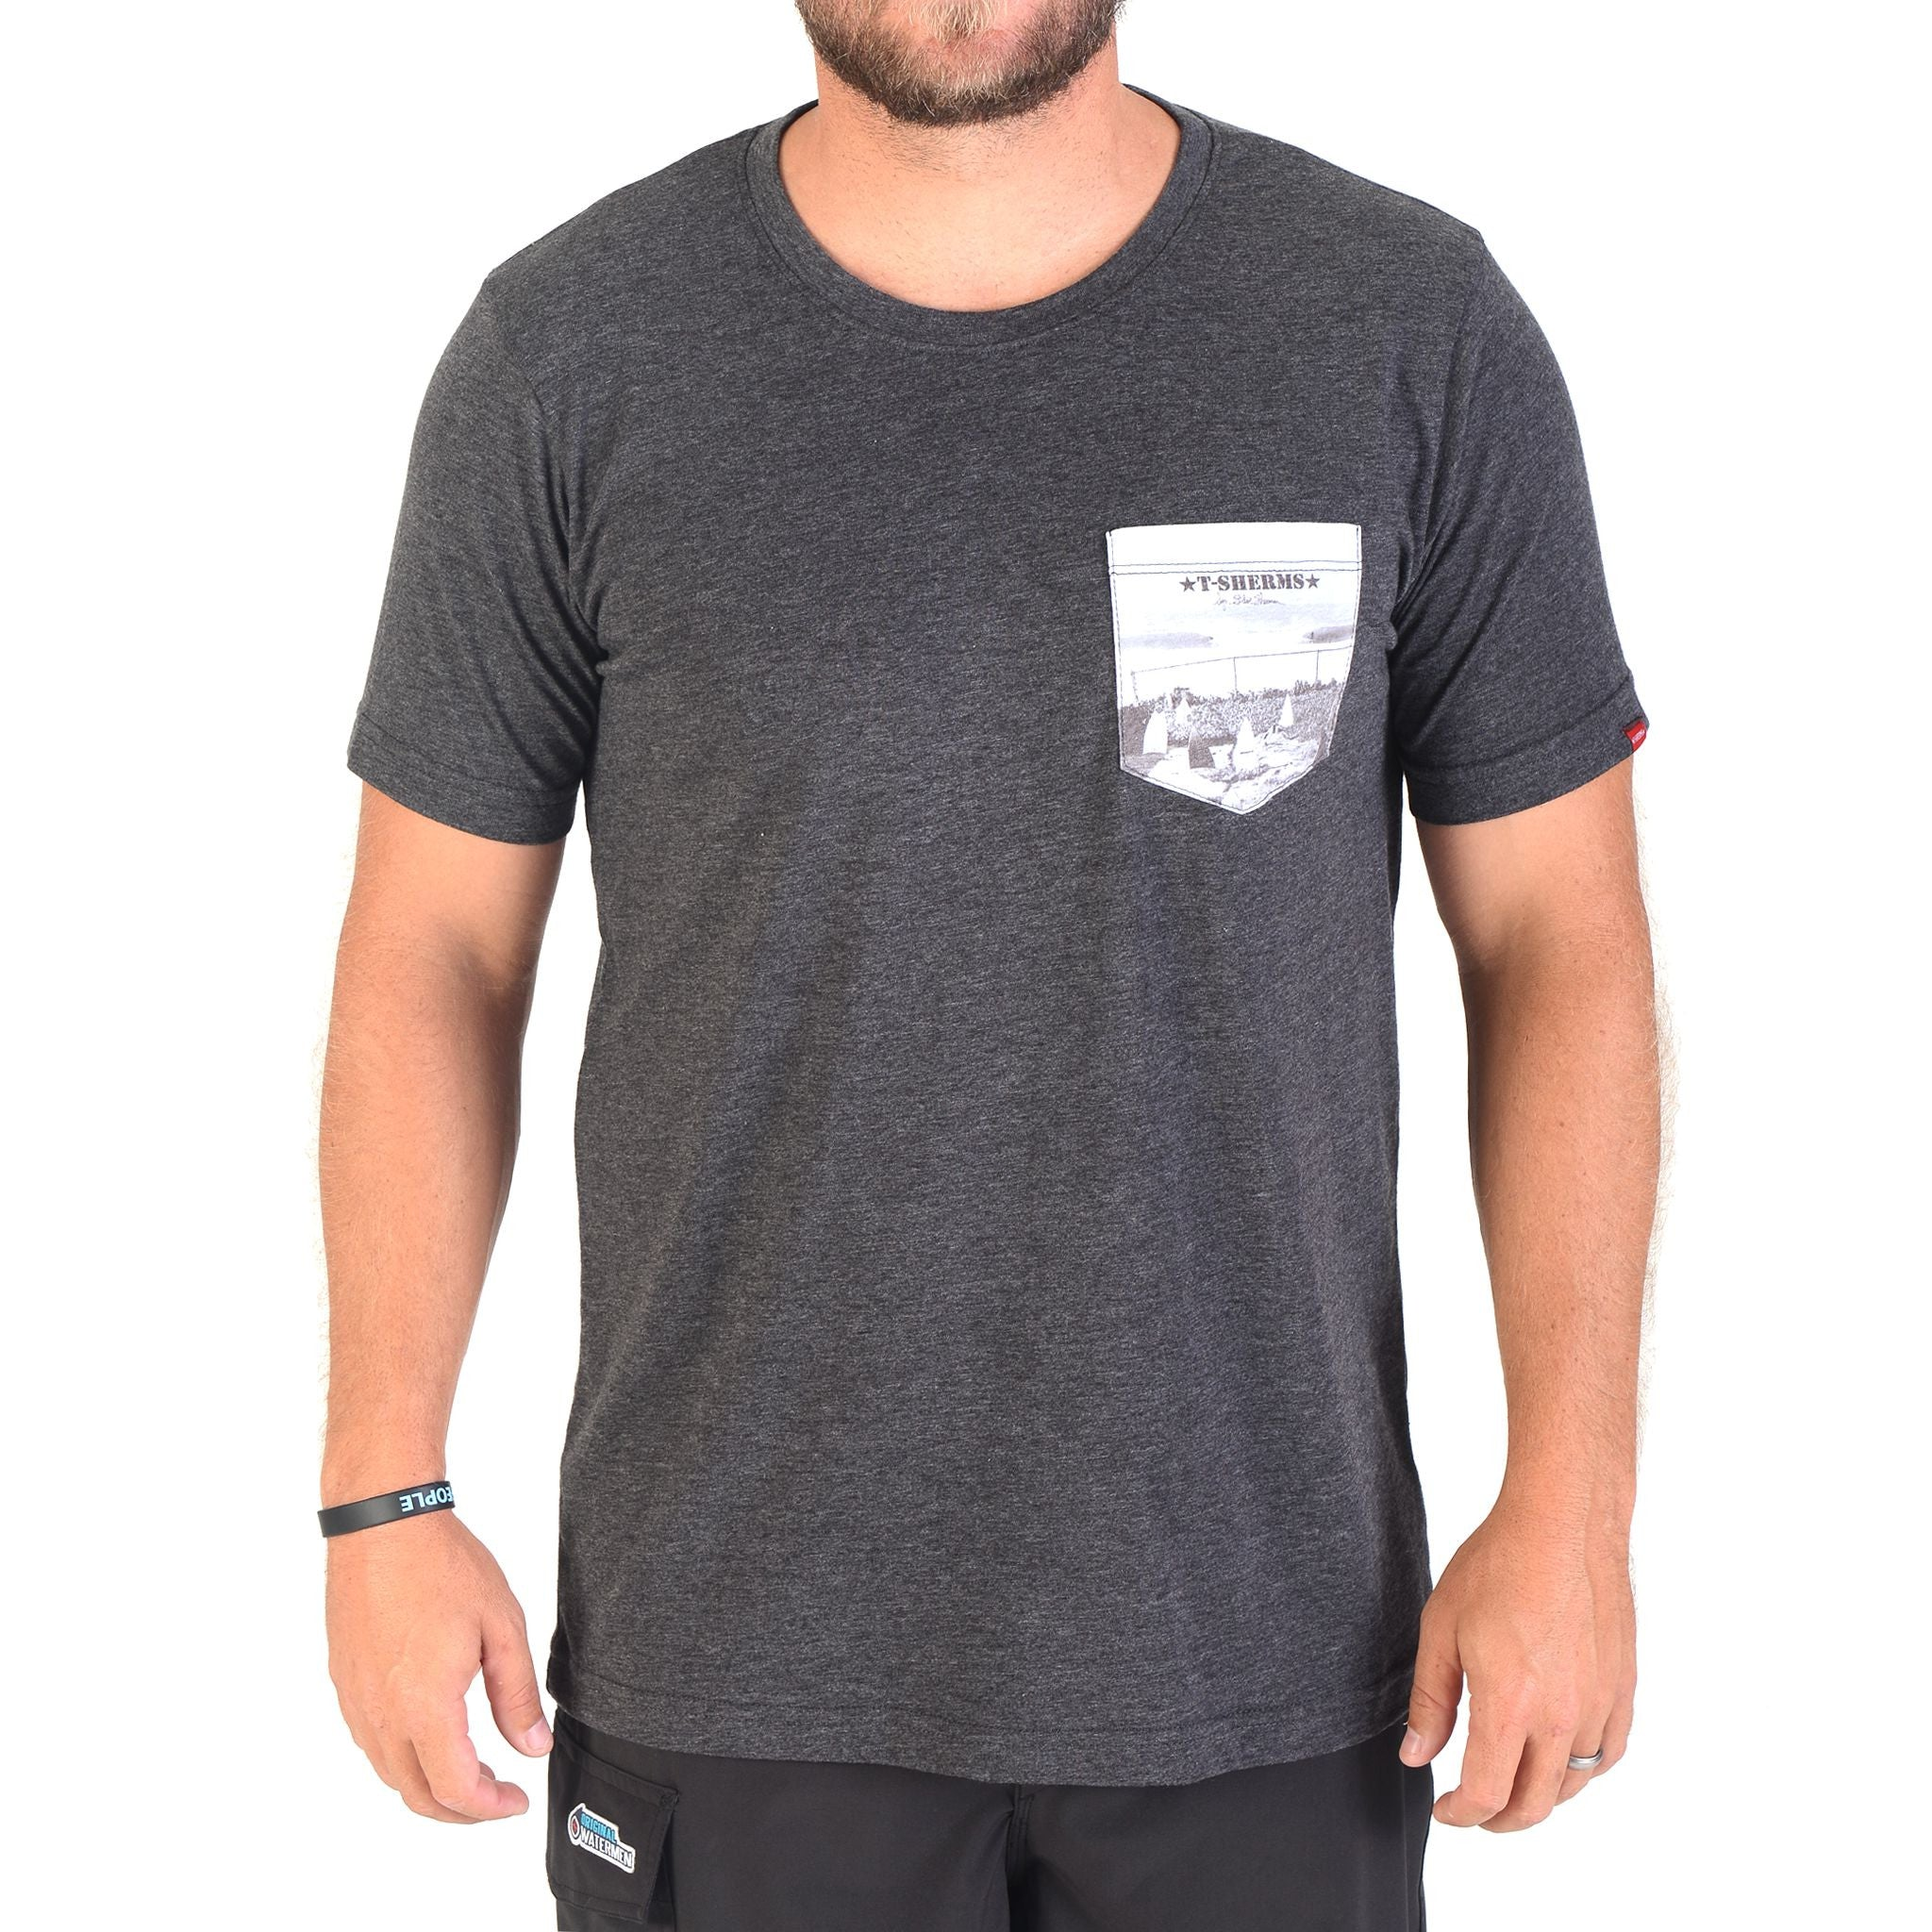 T-Sherms Graveyard Pocket T Shirt (Charcoal)